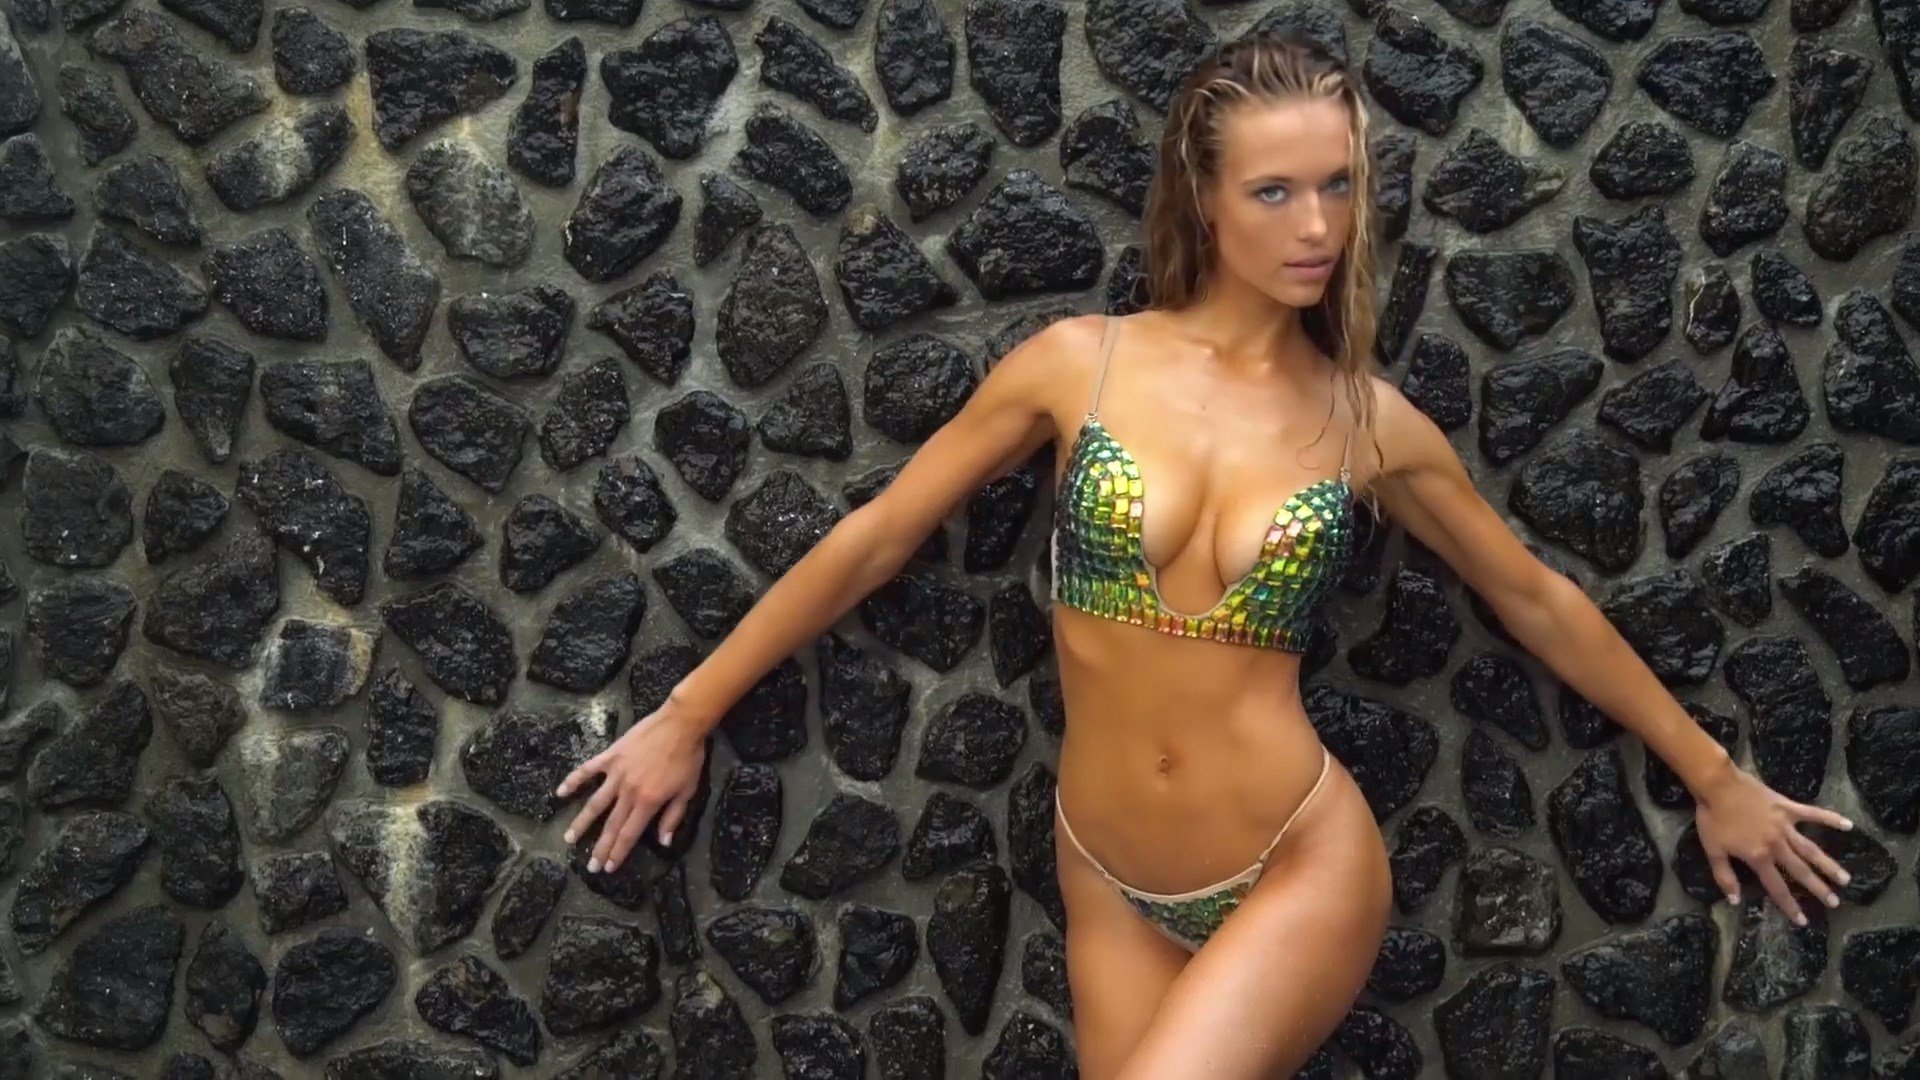 hot and sexy photos and videos